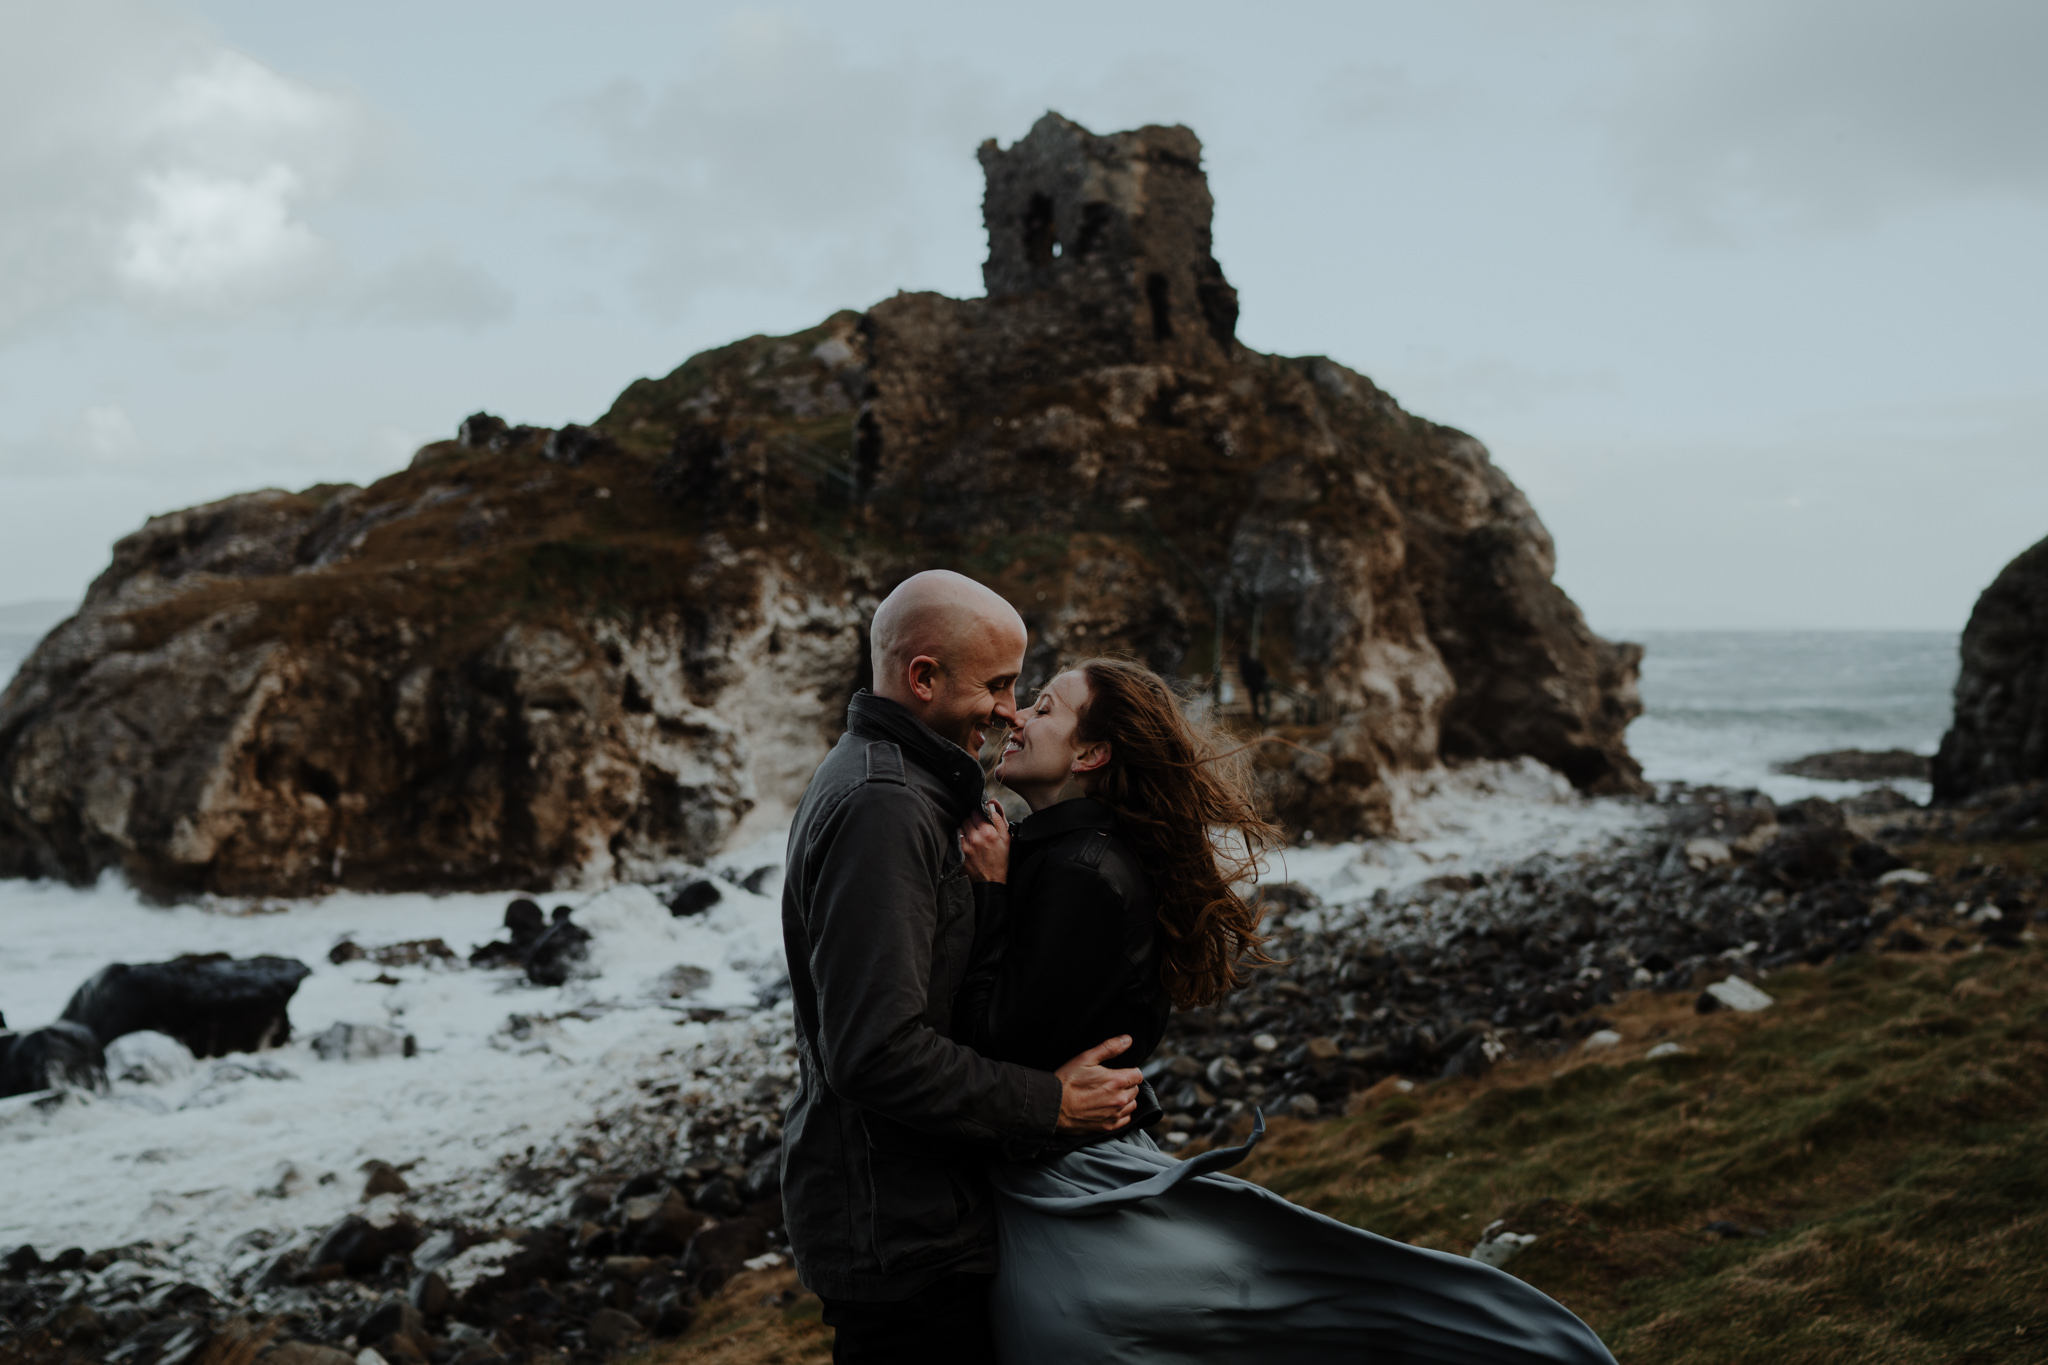 adventure travel ireland castle north coast kissing couple